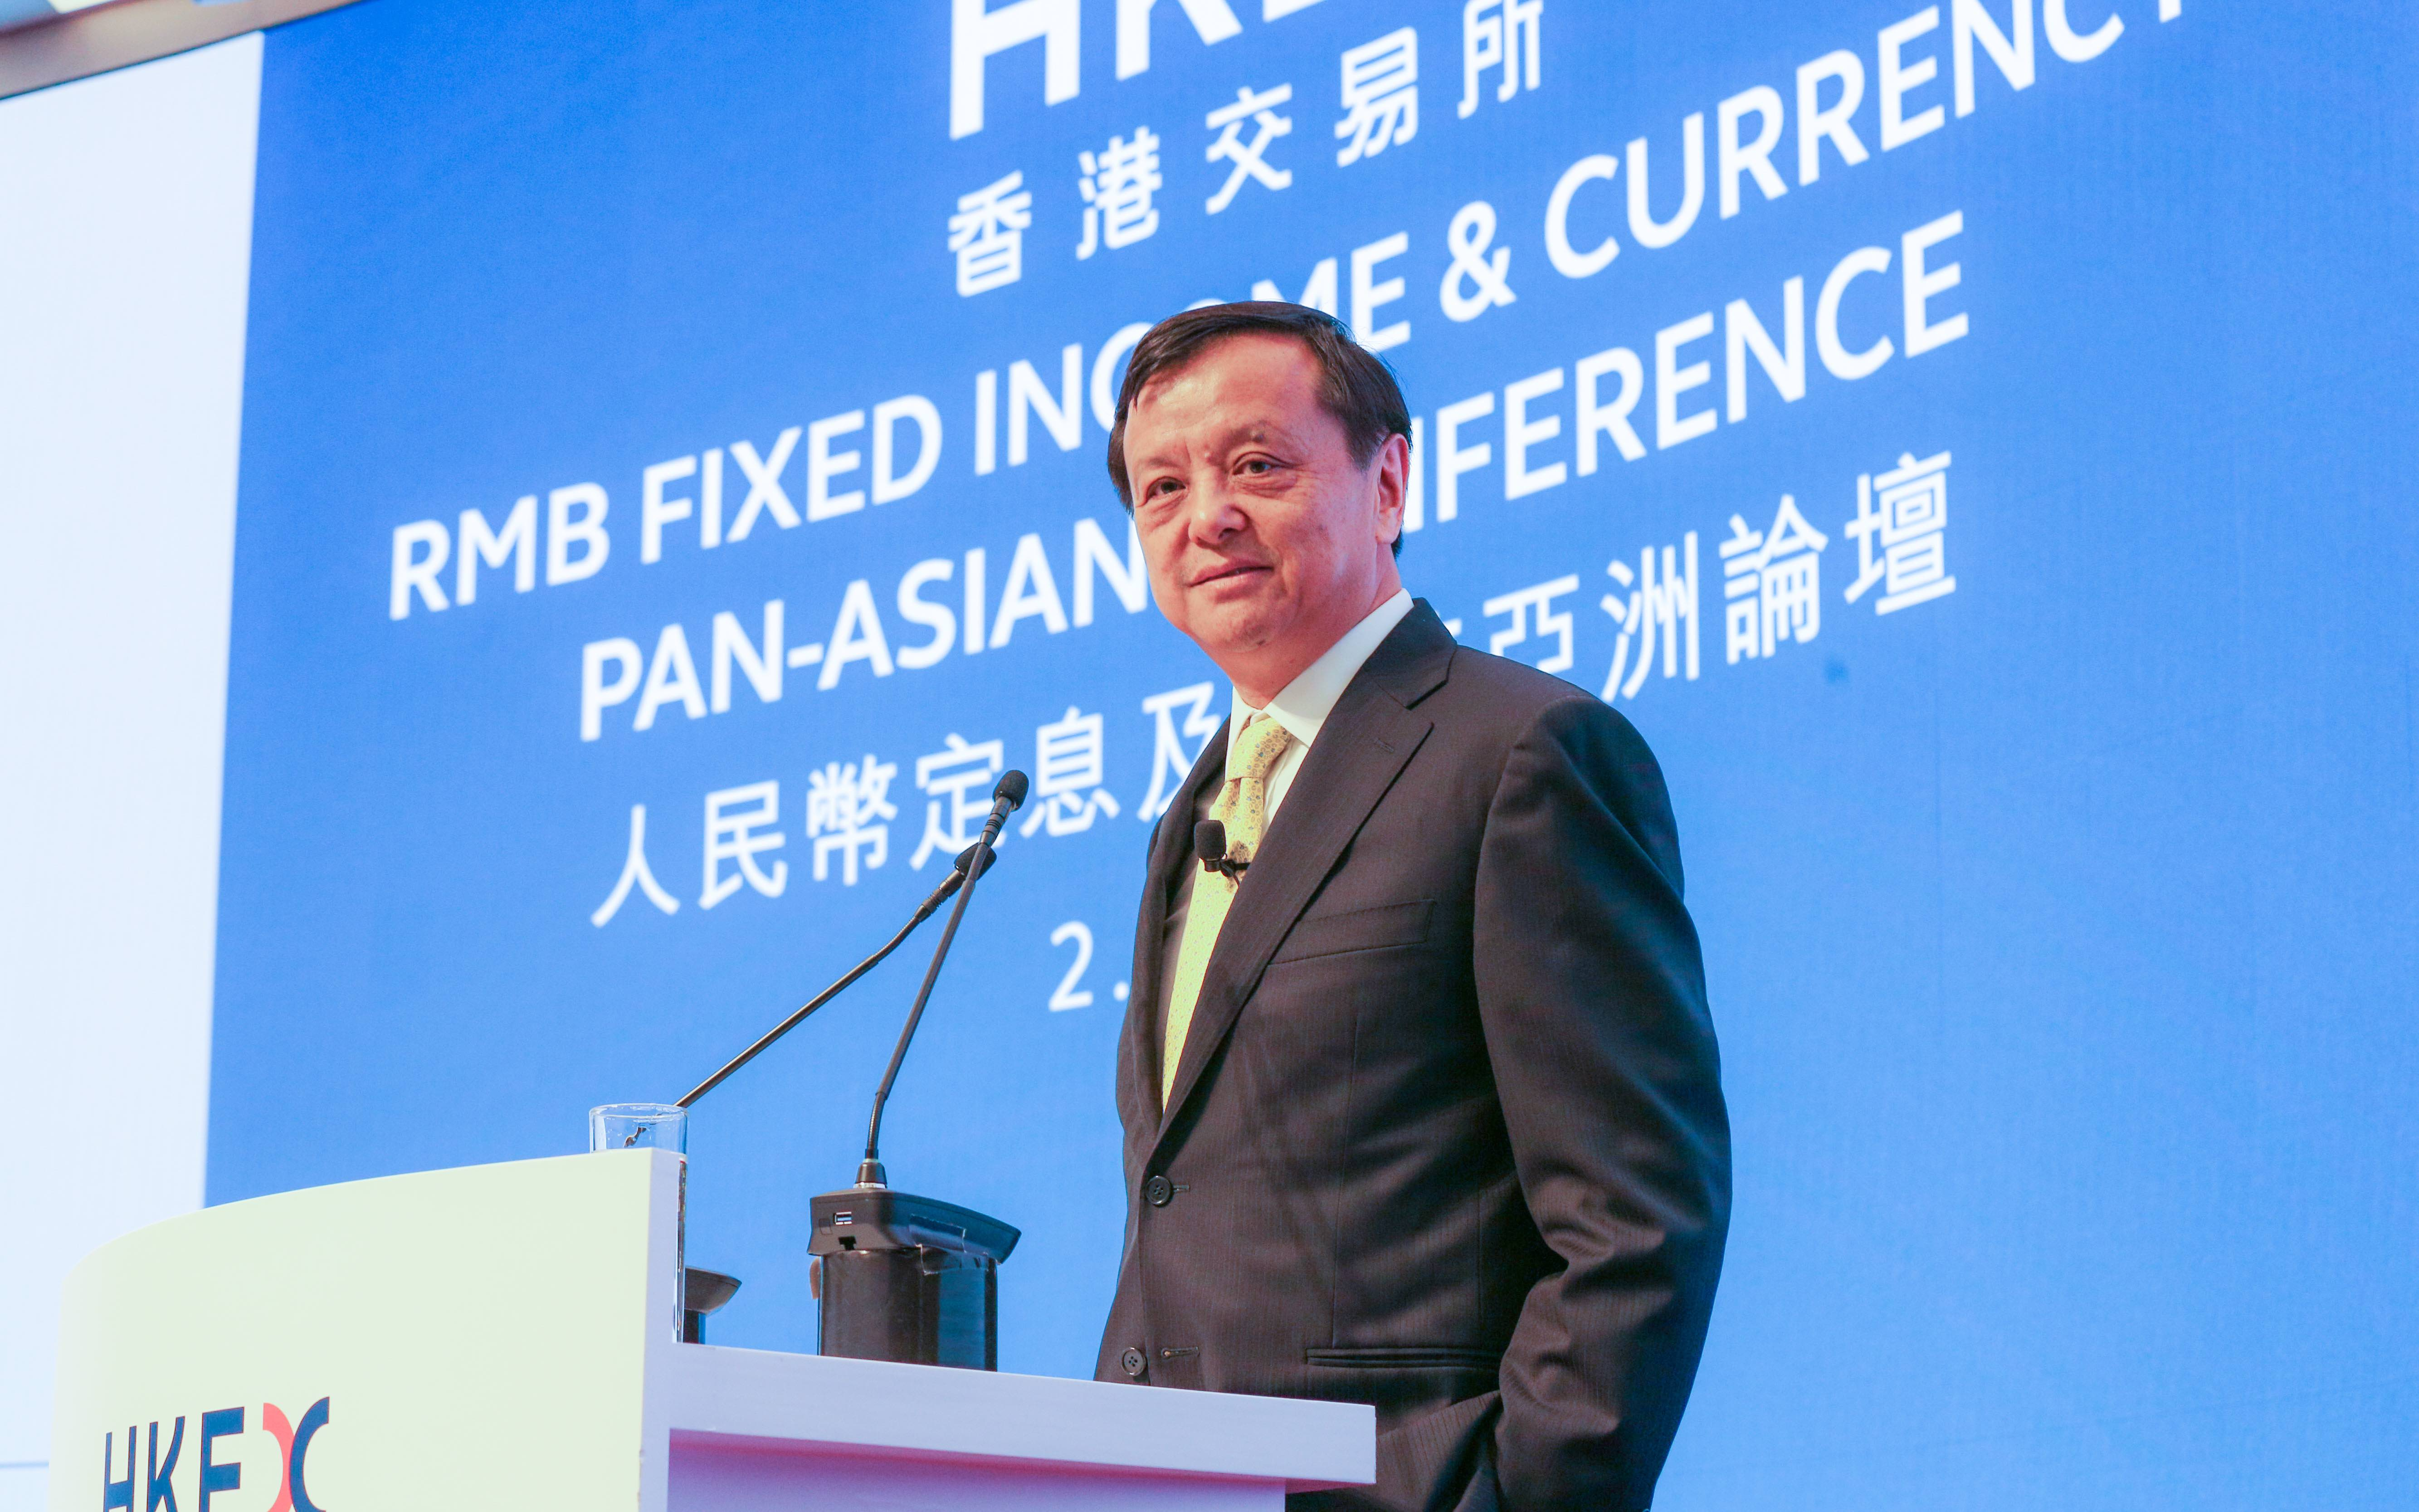 HKEX Chief Executive Charles Li speaks at HKEX RMB FIC conference